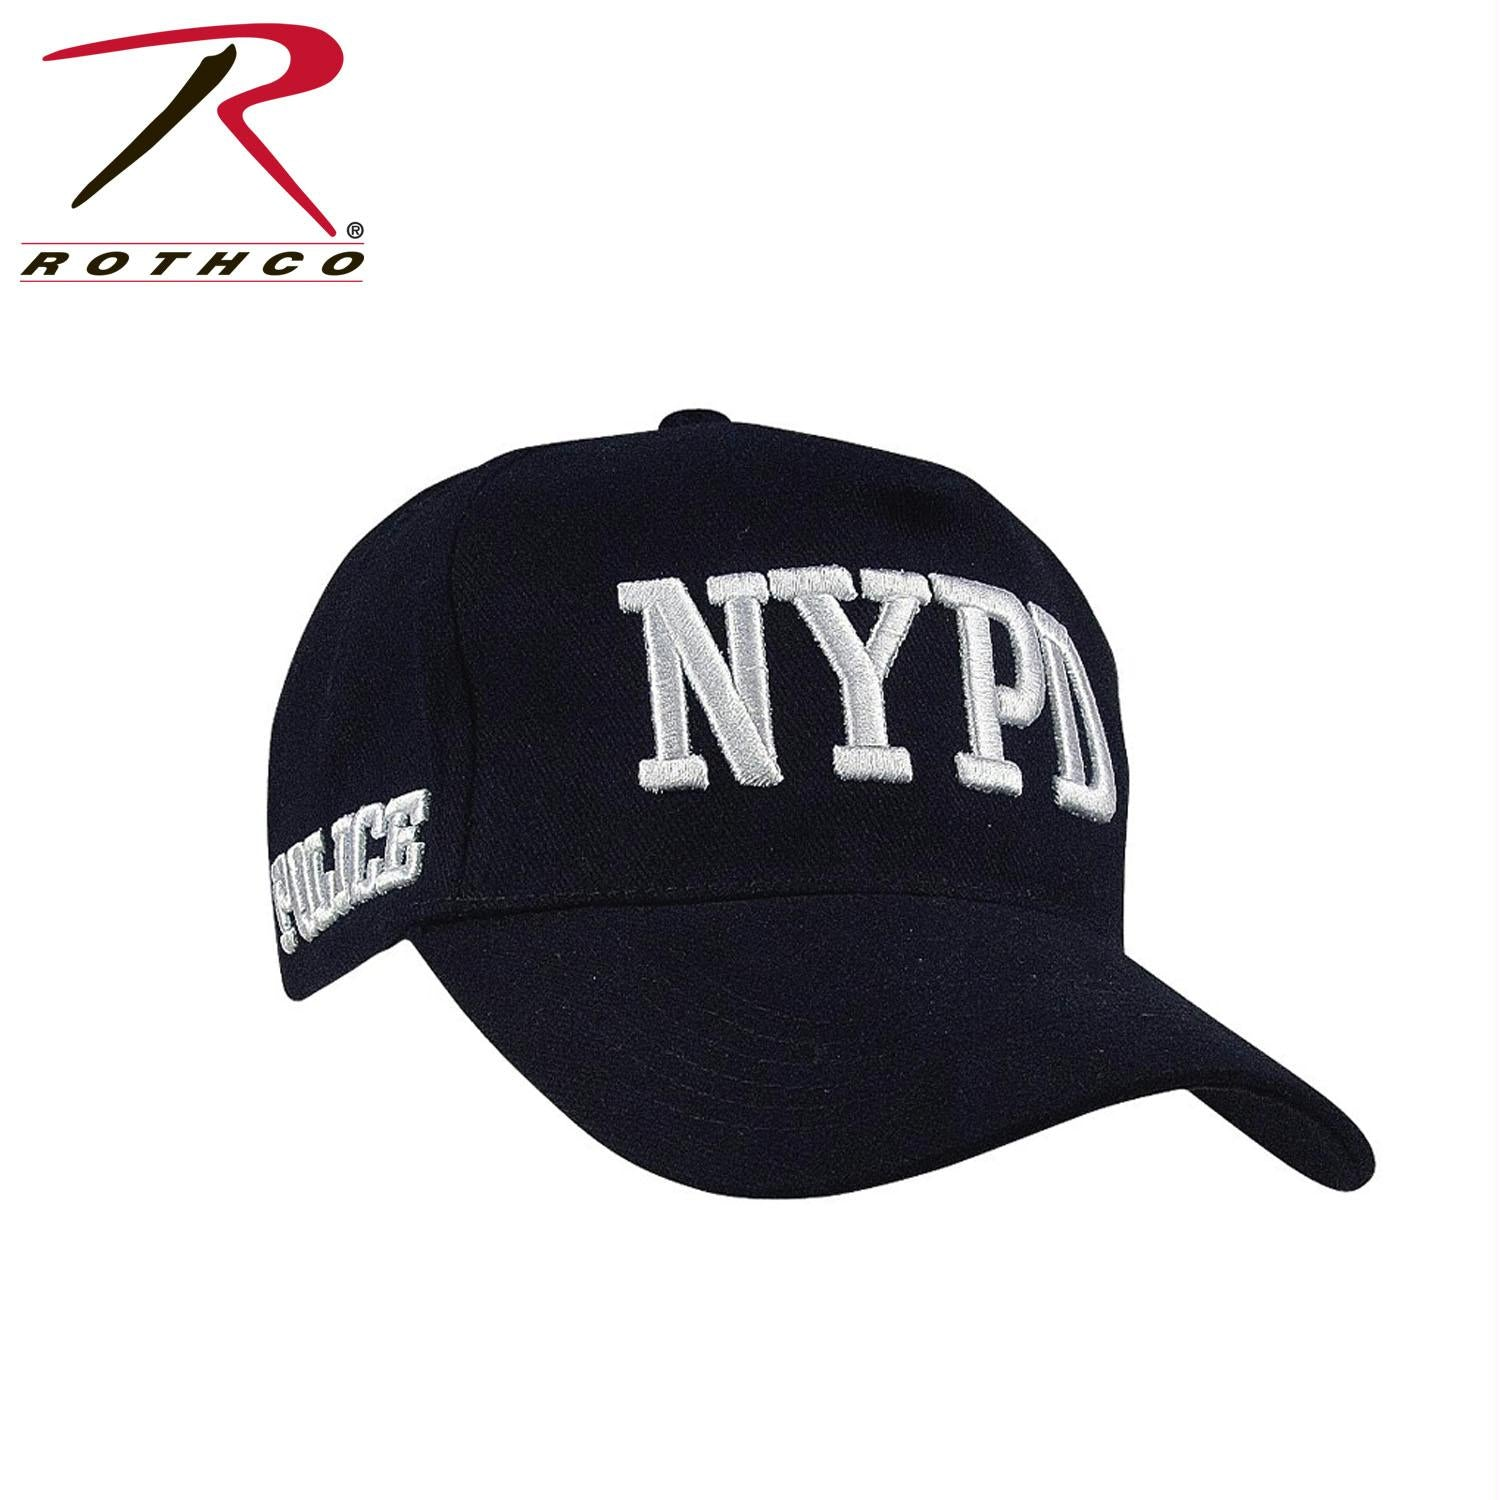 Officially Licensed NYPD Adjustable Cap